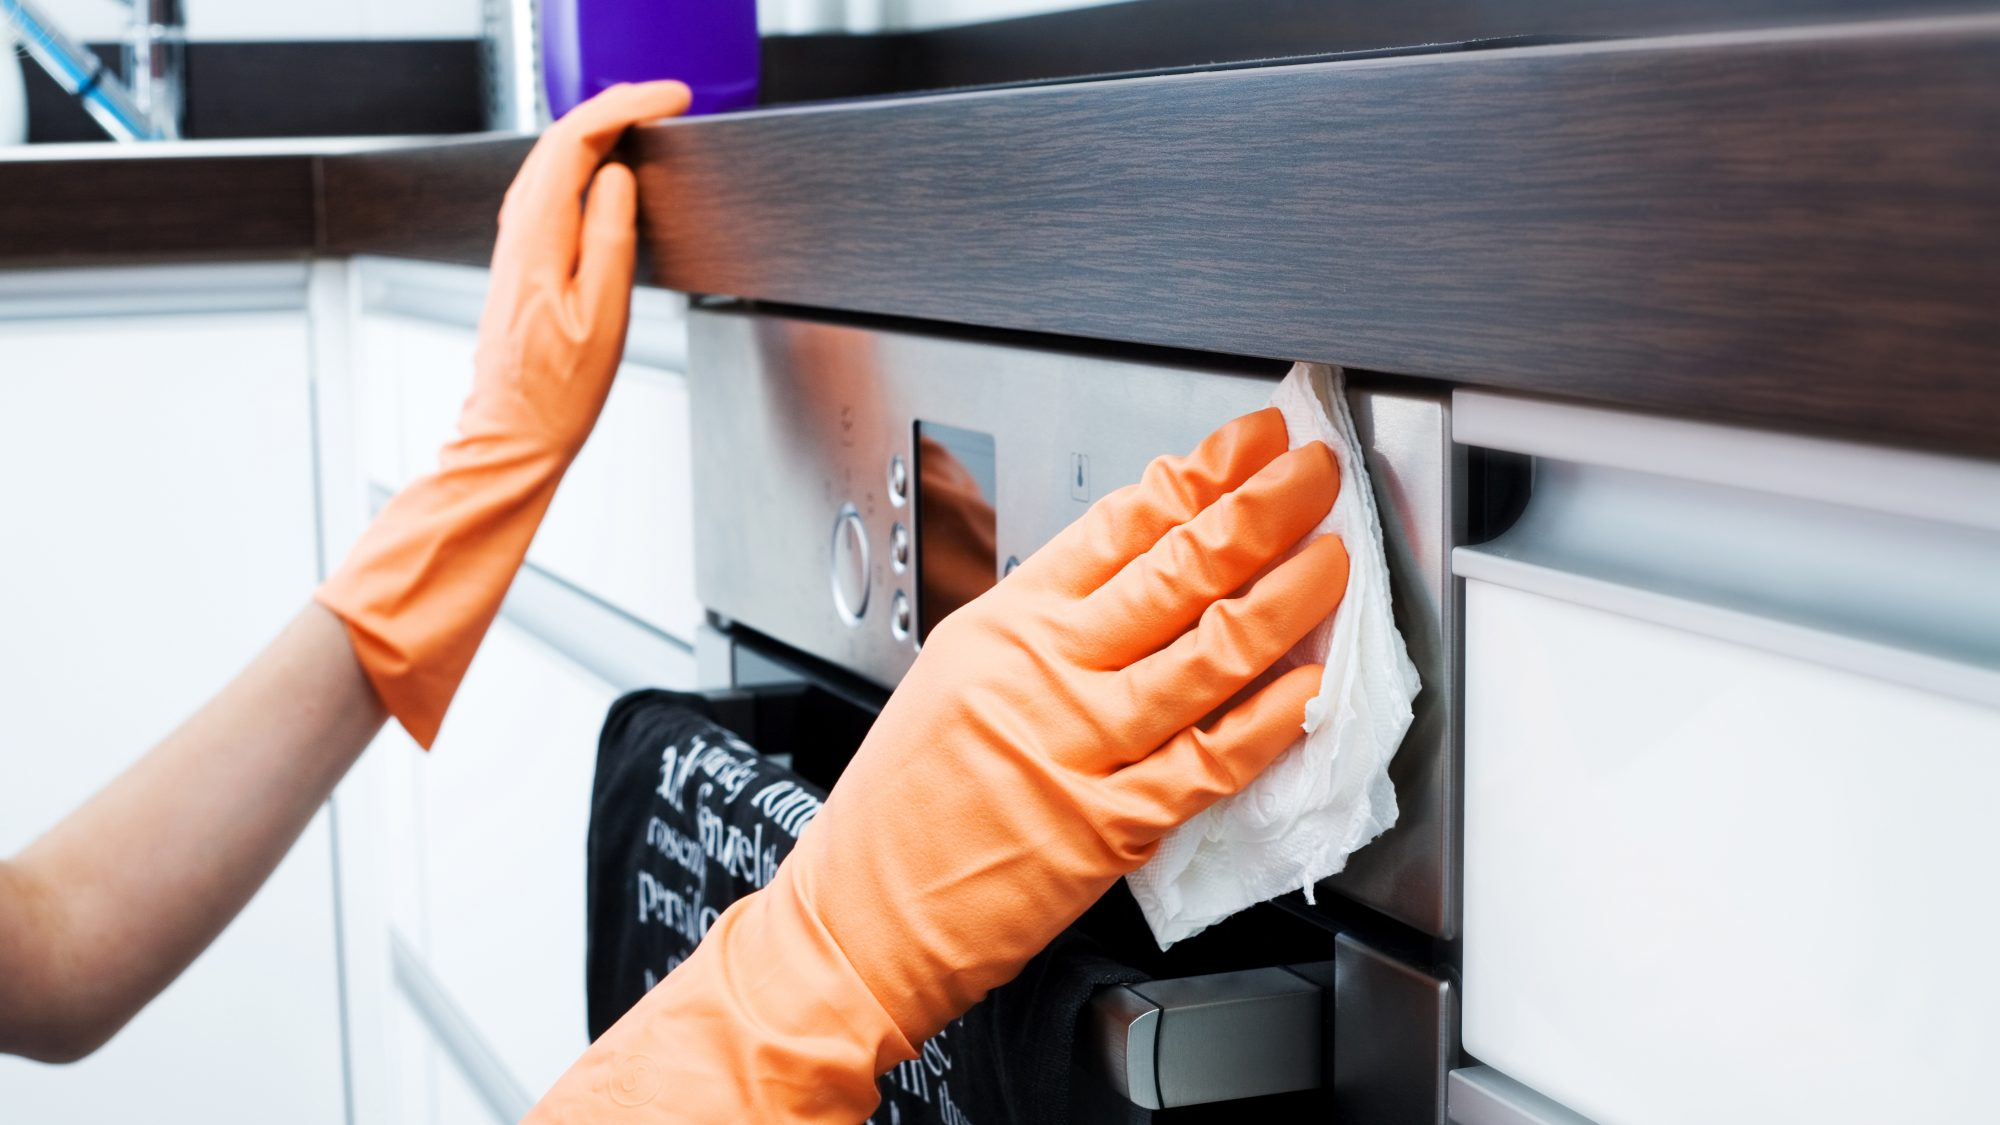 Woman Cleaning Oven in Airbnb to disinfect